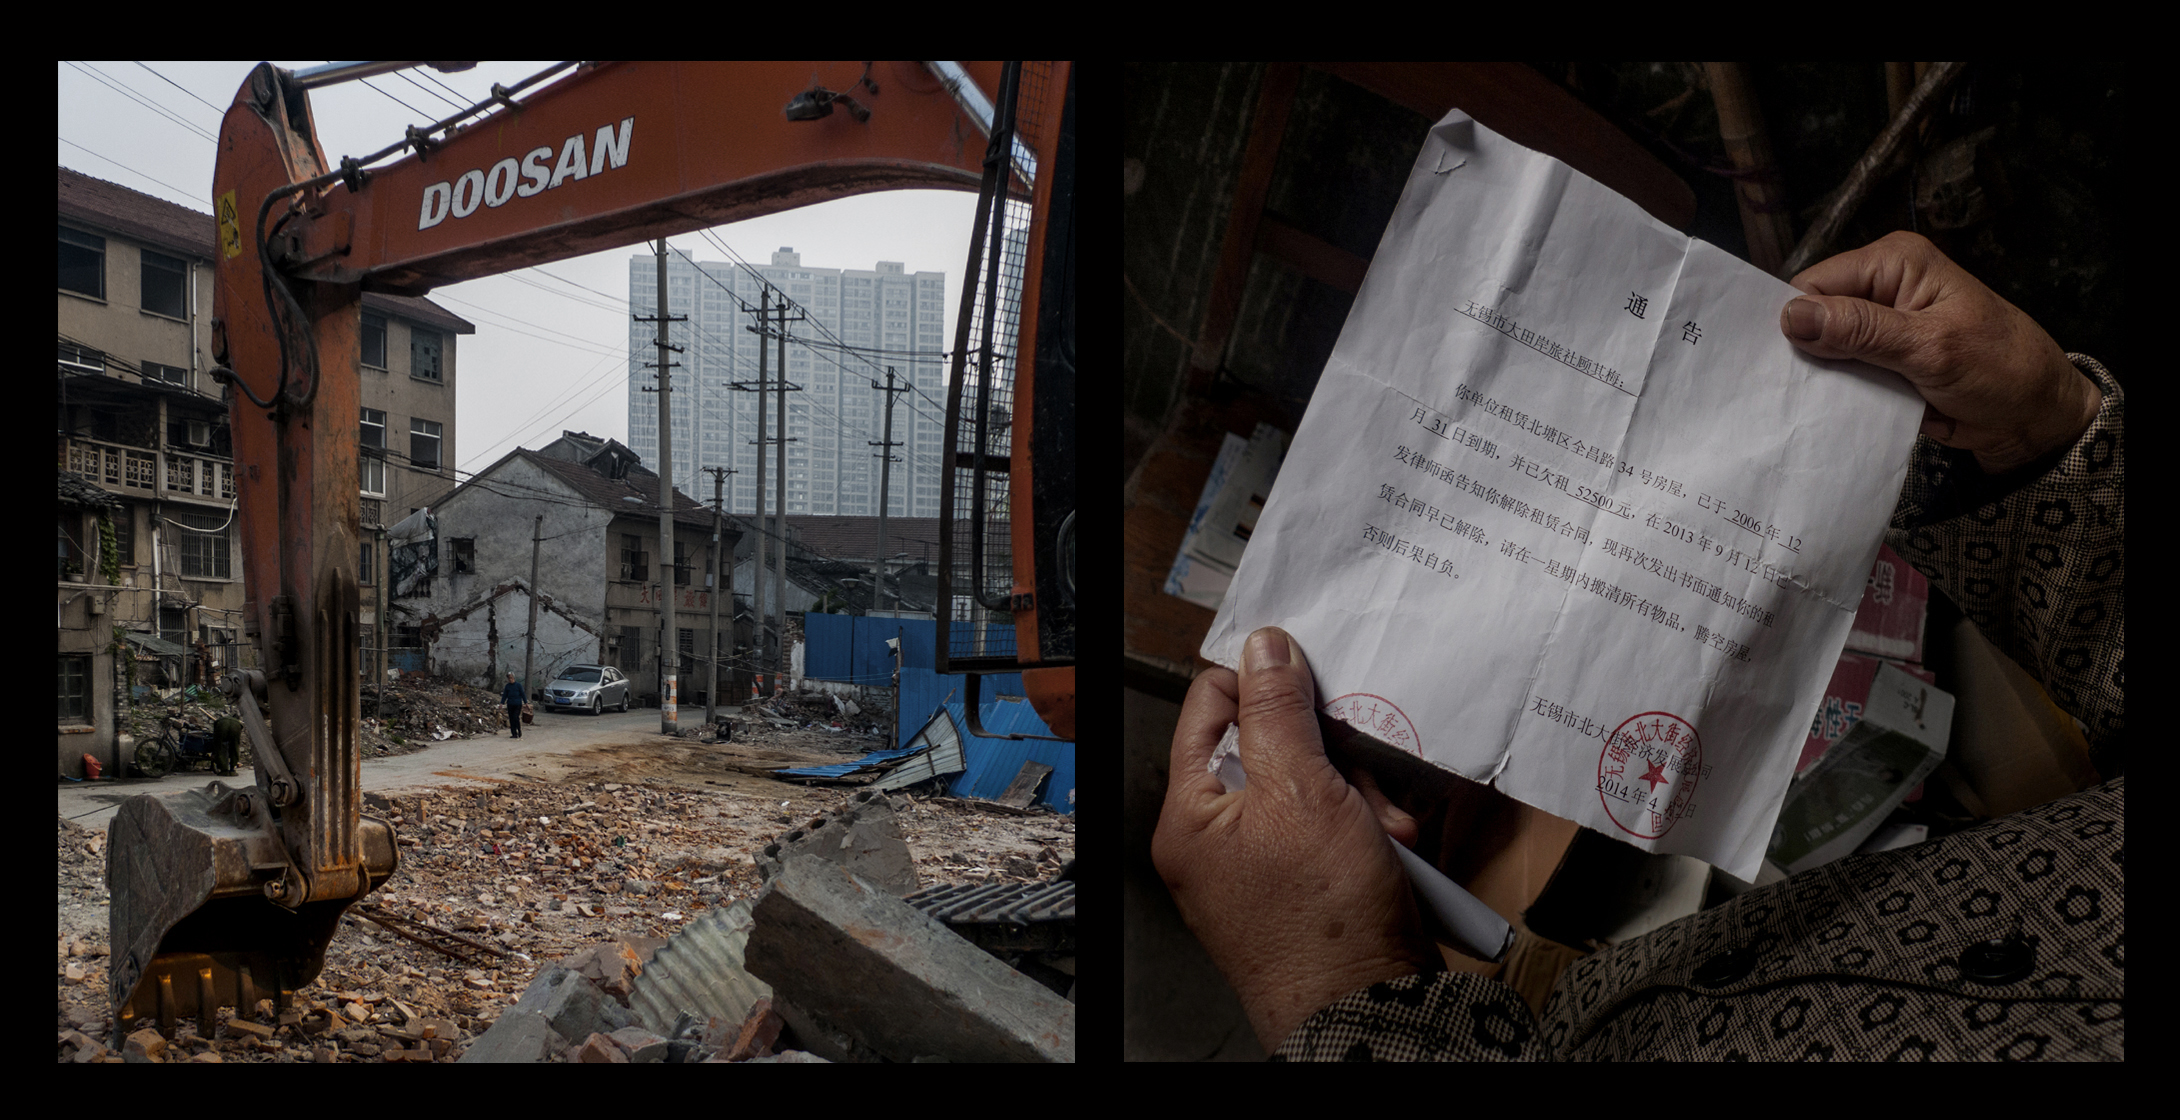 On April 2, 2014, the demolition notice arrived. A police officer delivered the notice that the hotel must cease operation. The residents were left with no choice but to pack their bags and scatter to the four winds. A week later, while Ms. Gu was away, demolition workers began to dismantle the Big Paddy's Edge Inn. It had been in operation for 33 years.